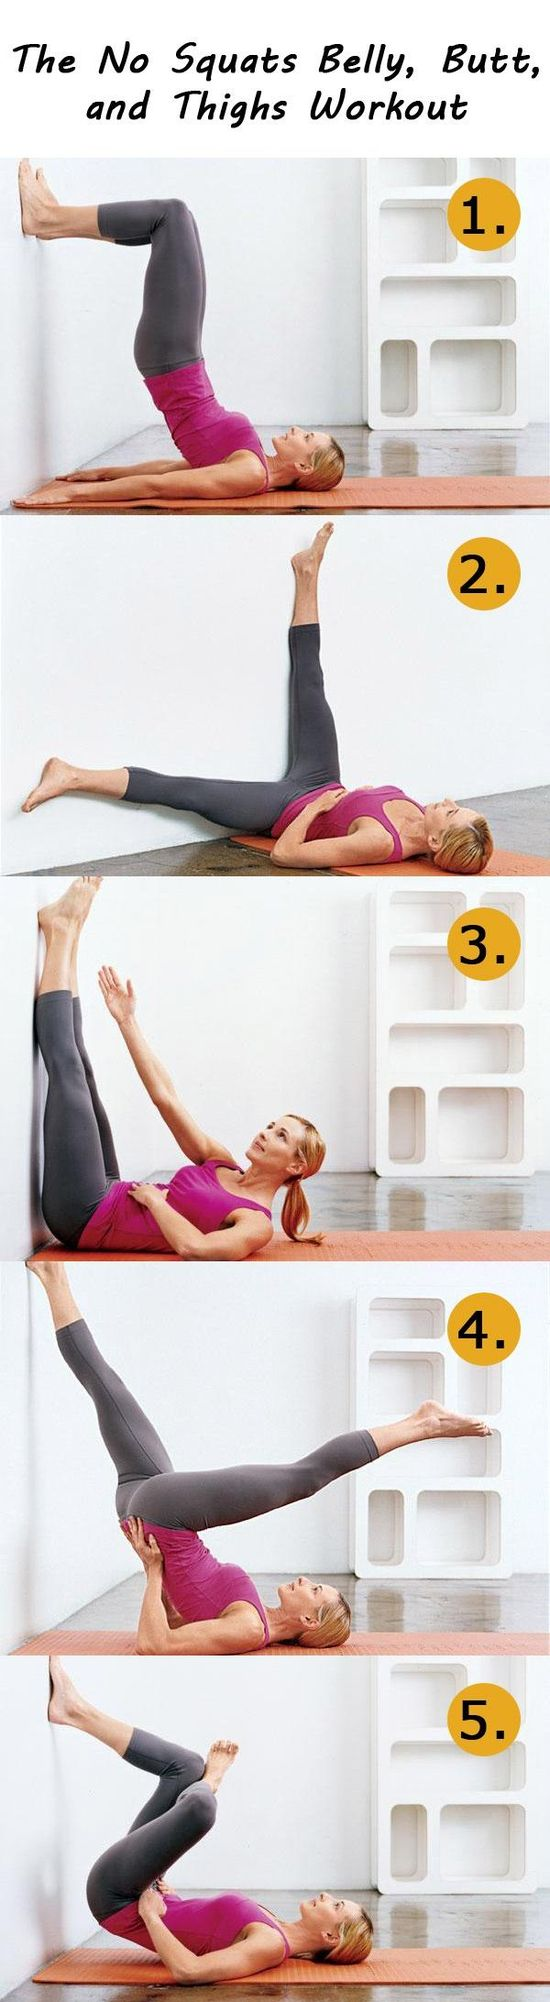 With this fantastic workout routine you will be able to flatten your belly, slim your thighs, and firm your butt in 2 weeks